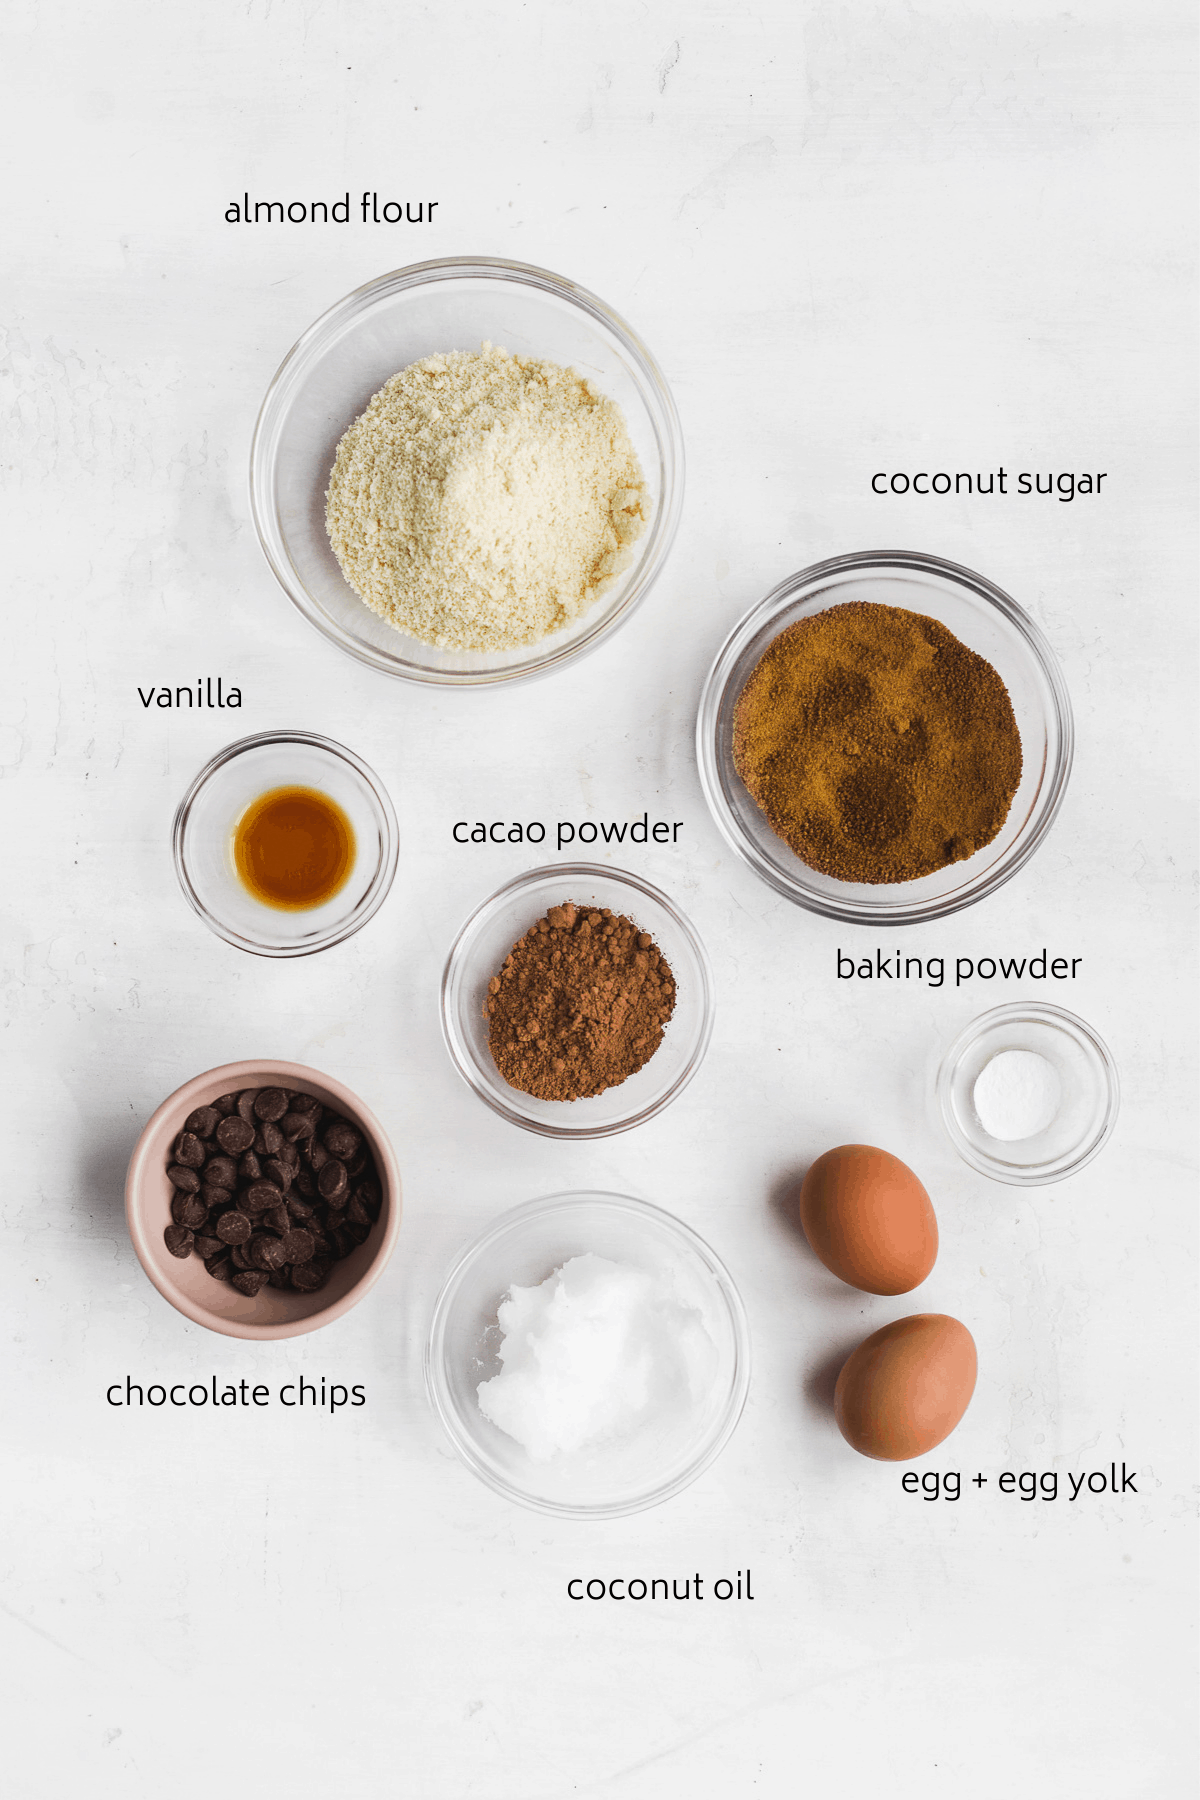 Image of ingredients in bowls on a white surface.